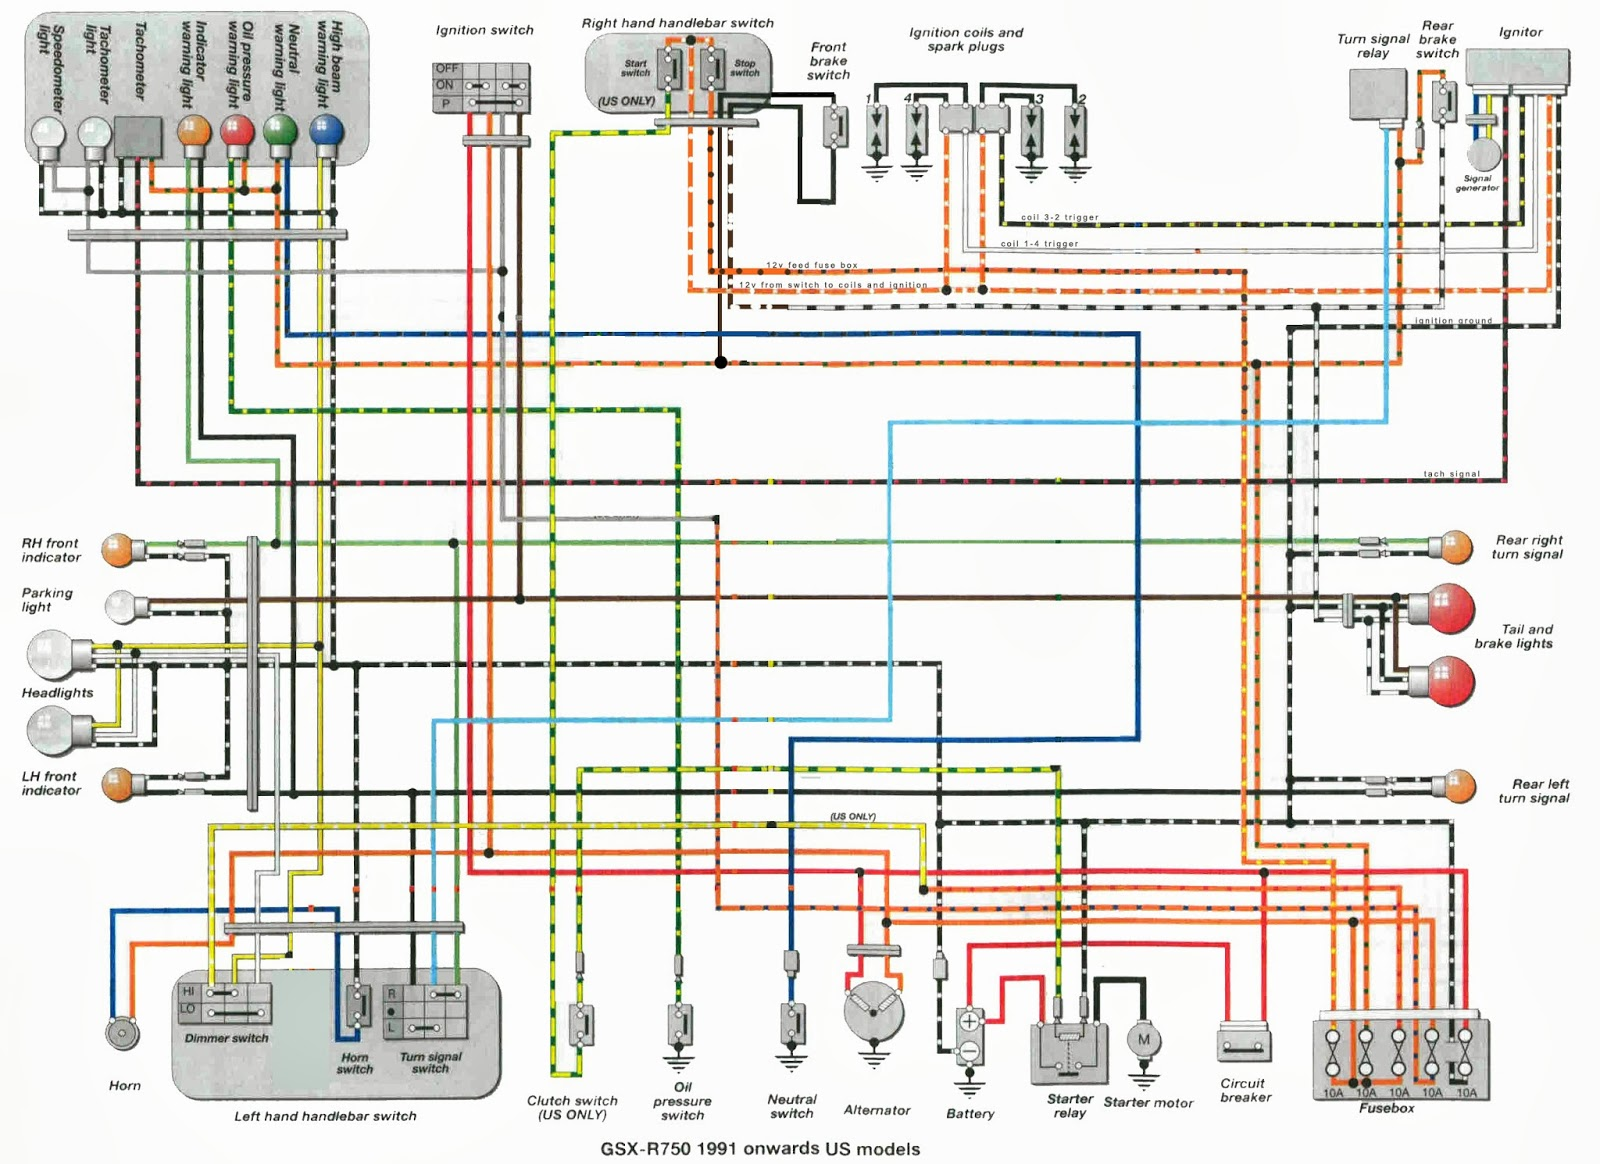 Yamaha G1 Wiring Harness Schematic Timberwolf Drive Diagrams G On G8